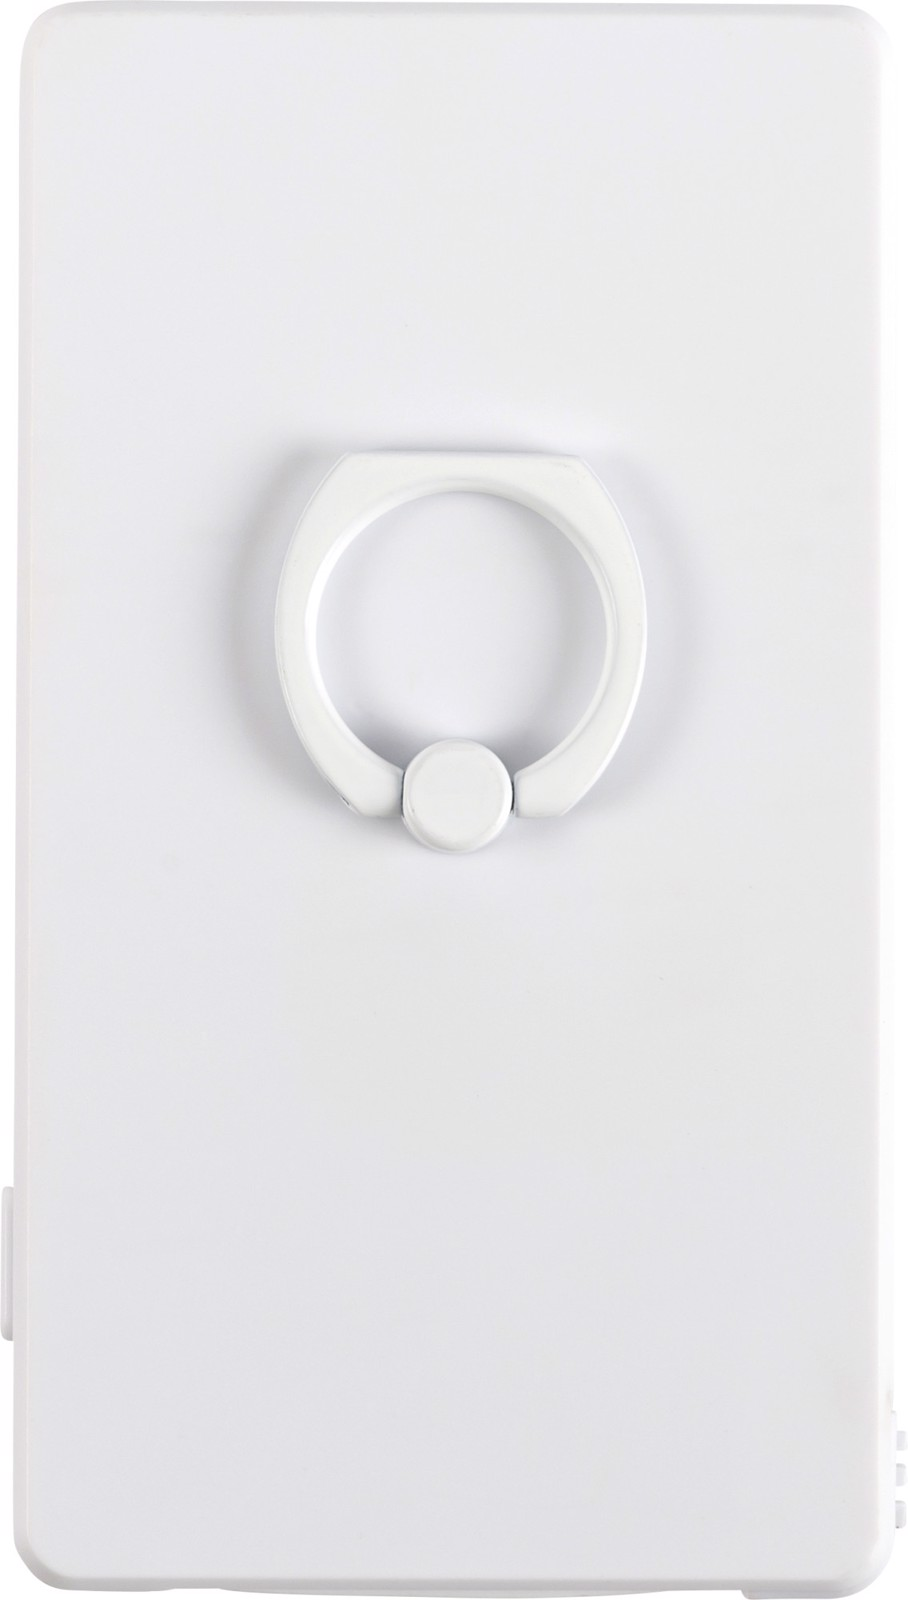 ABS power bank - White